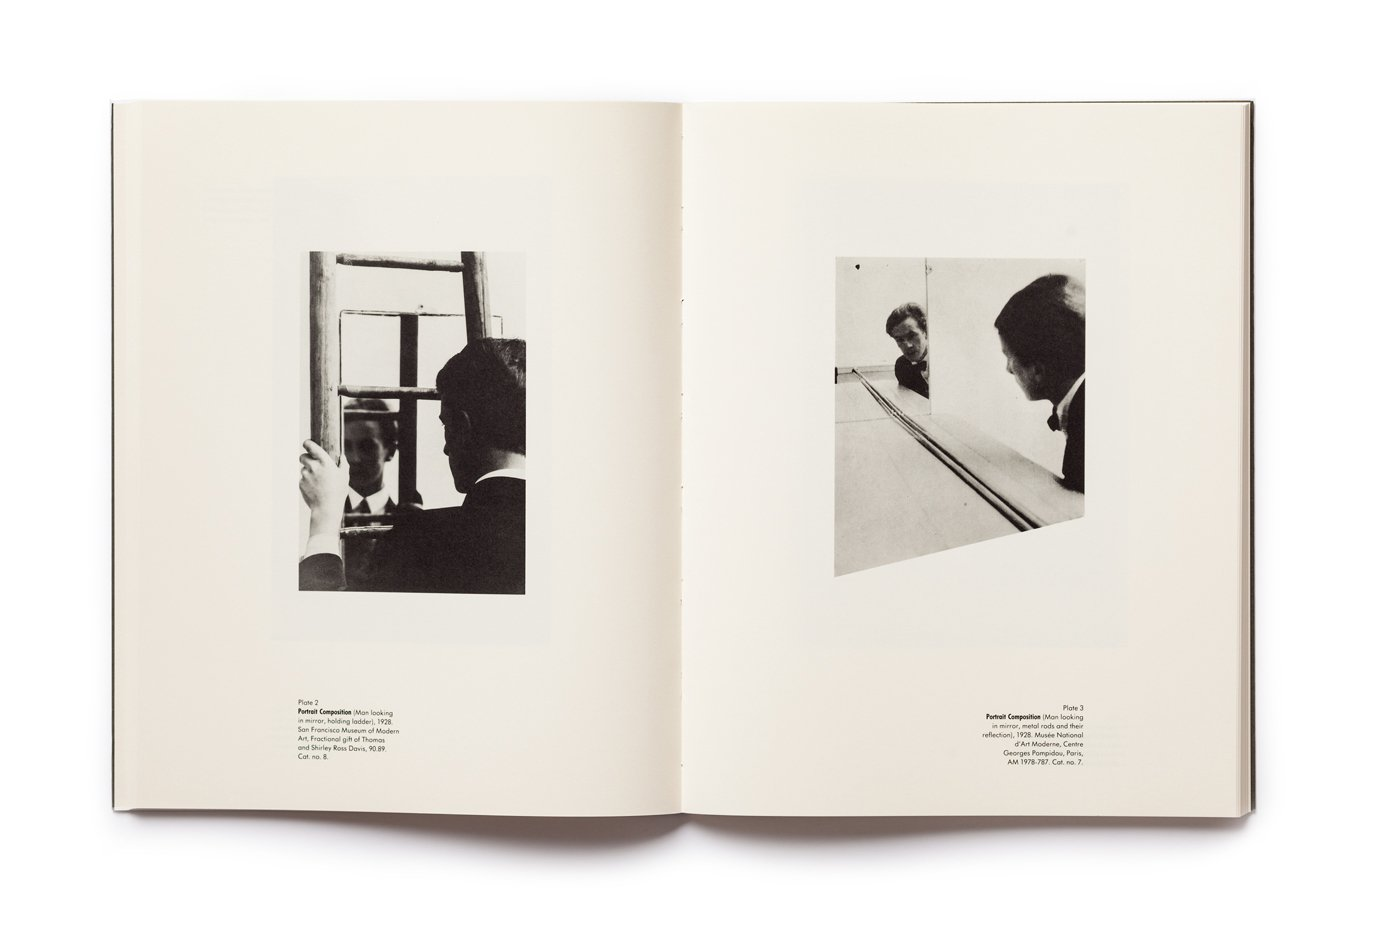 Florence Henri: Artist-Photographer of the Avant Garde, plates 2 and 3